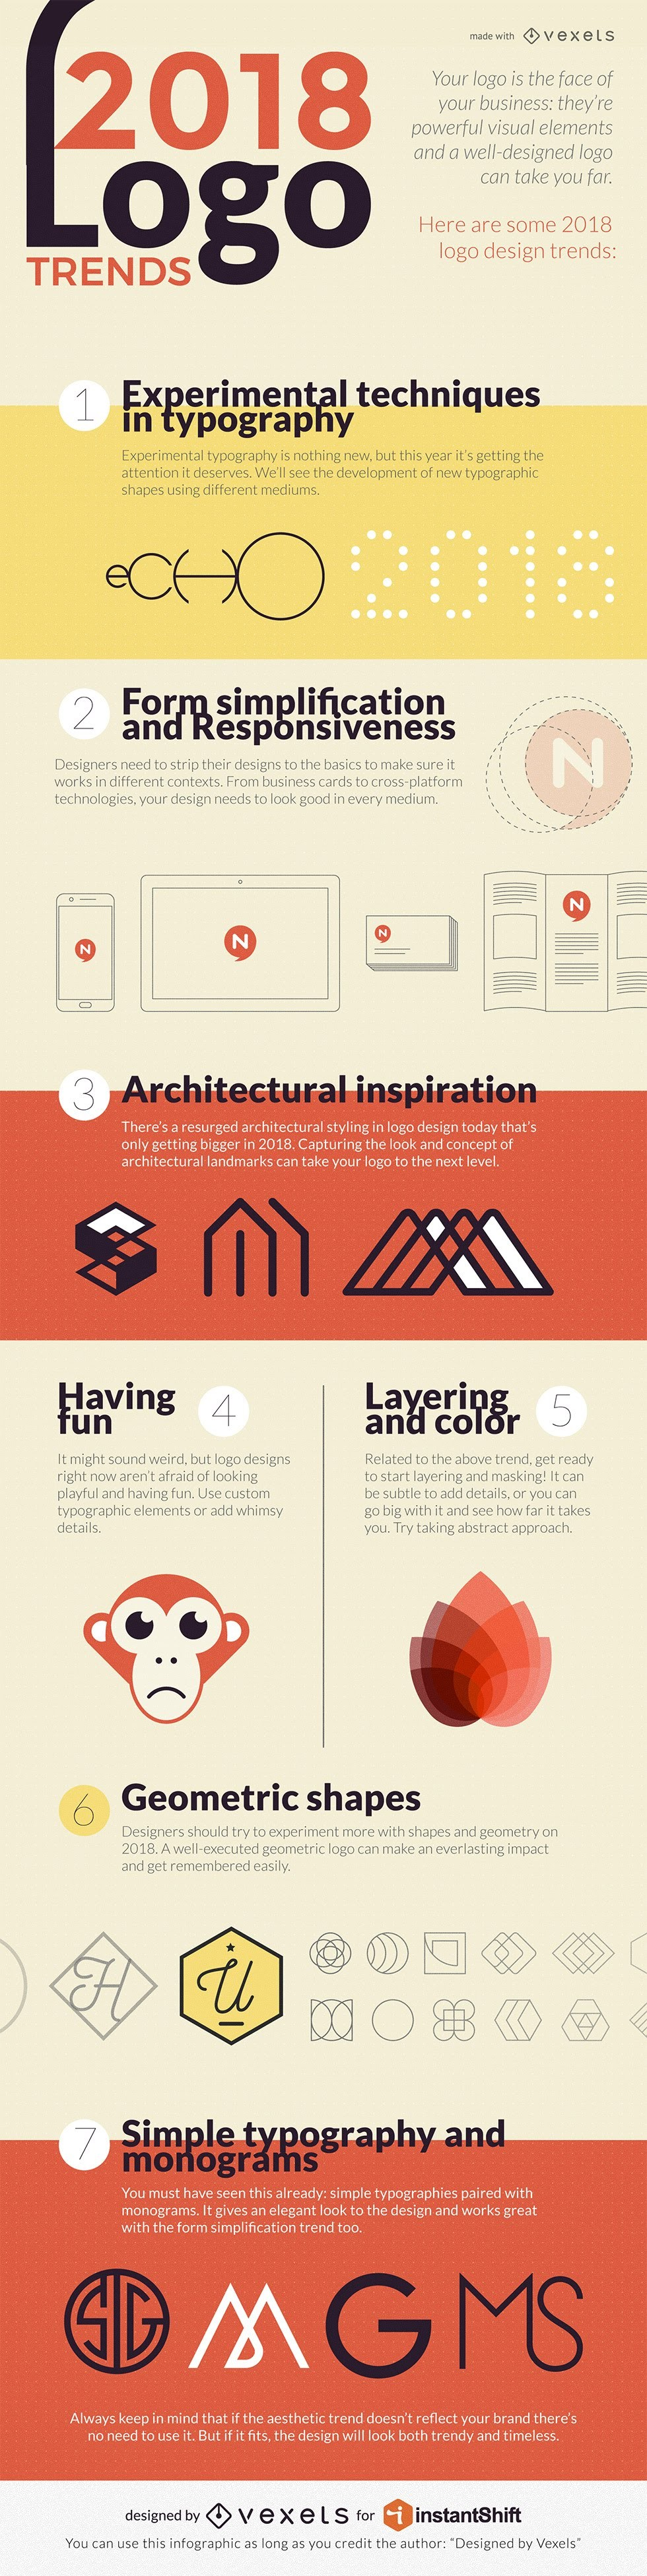 2018 Logo Design Trends [Infographic] | Social Media Today